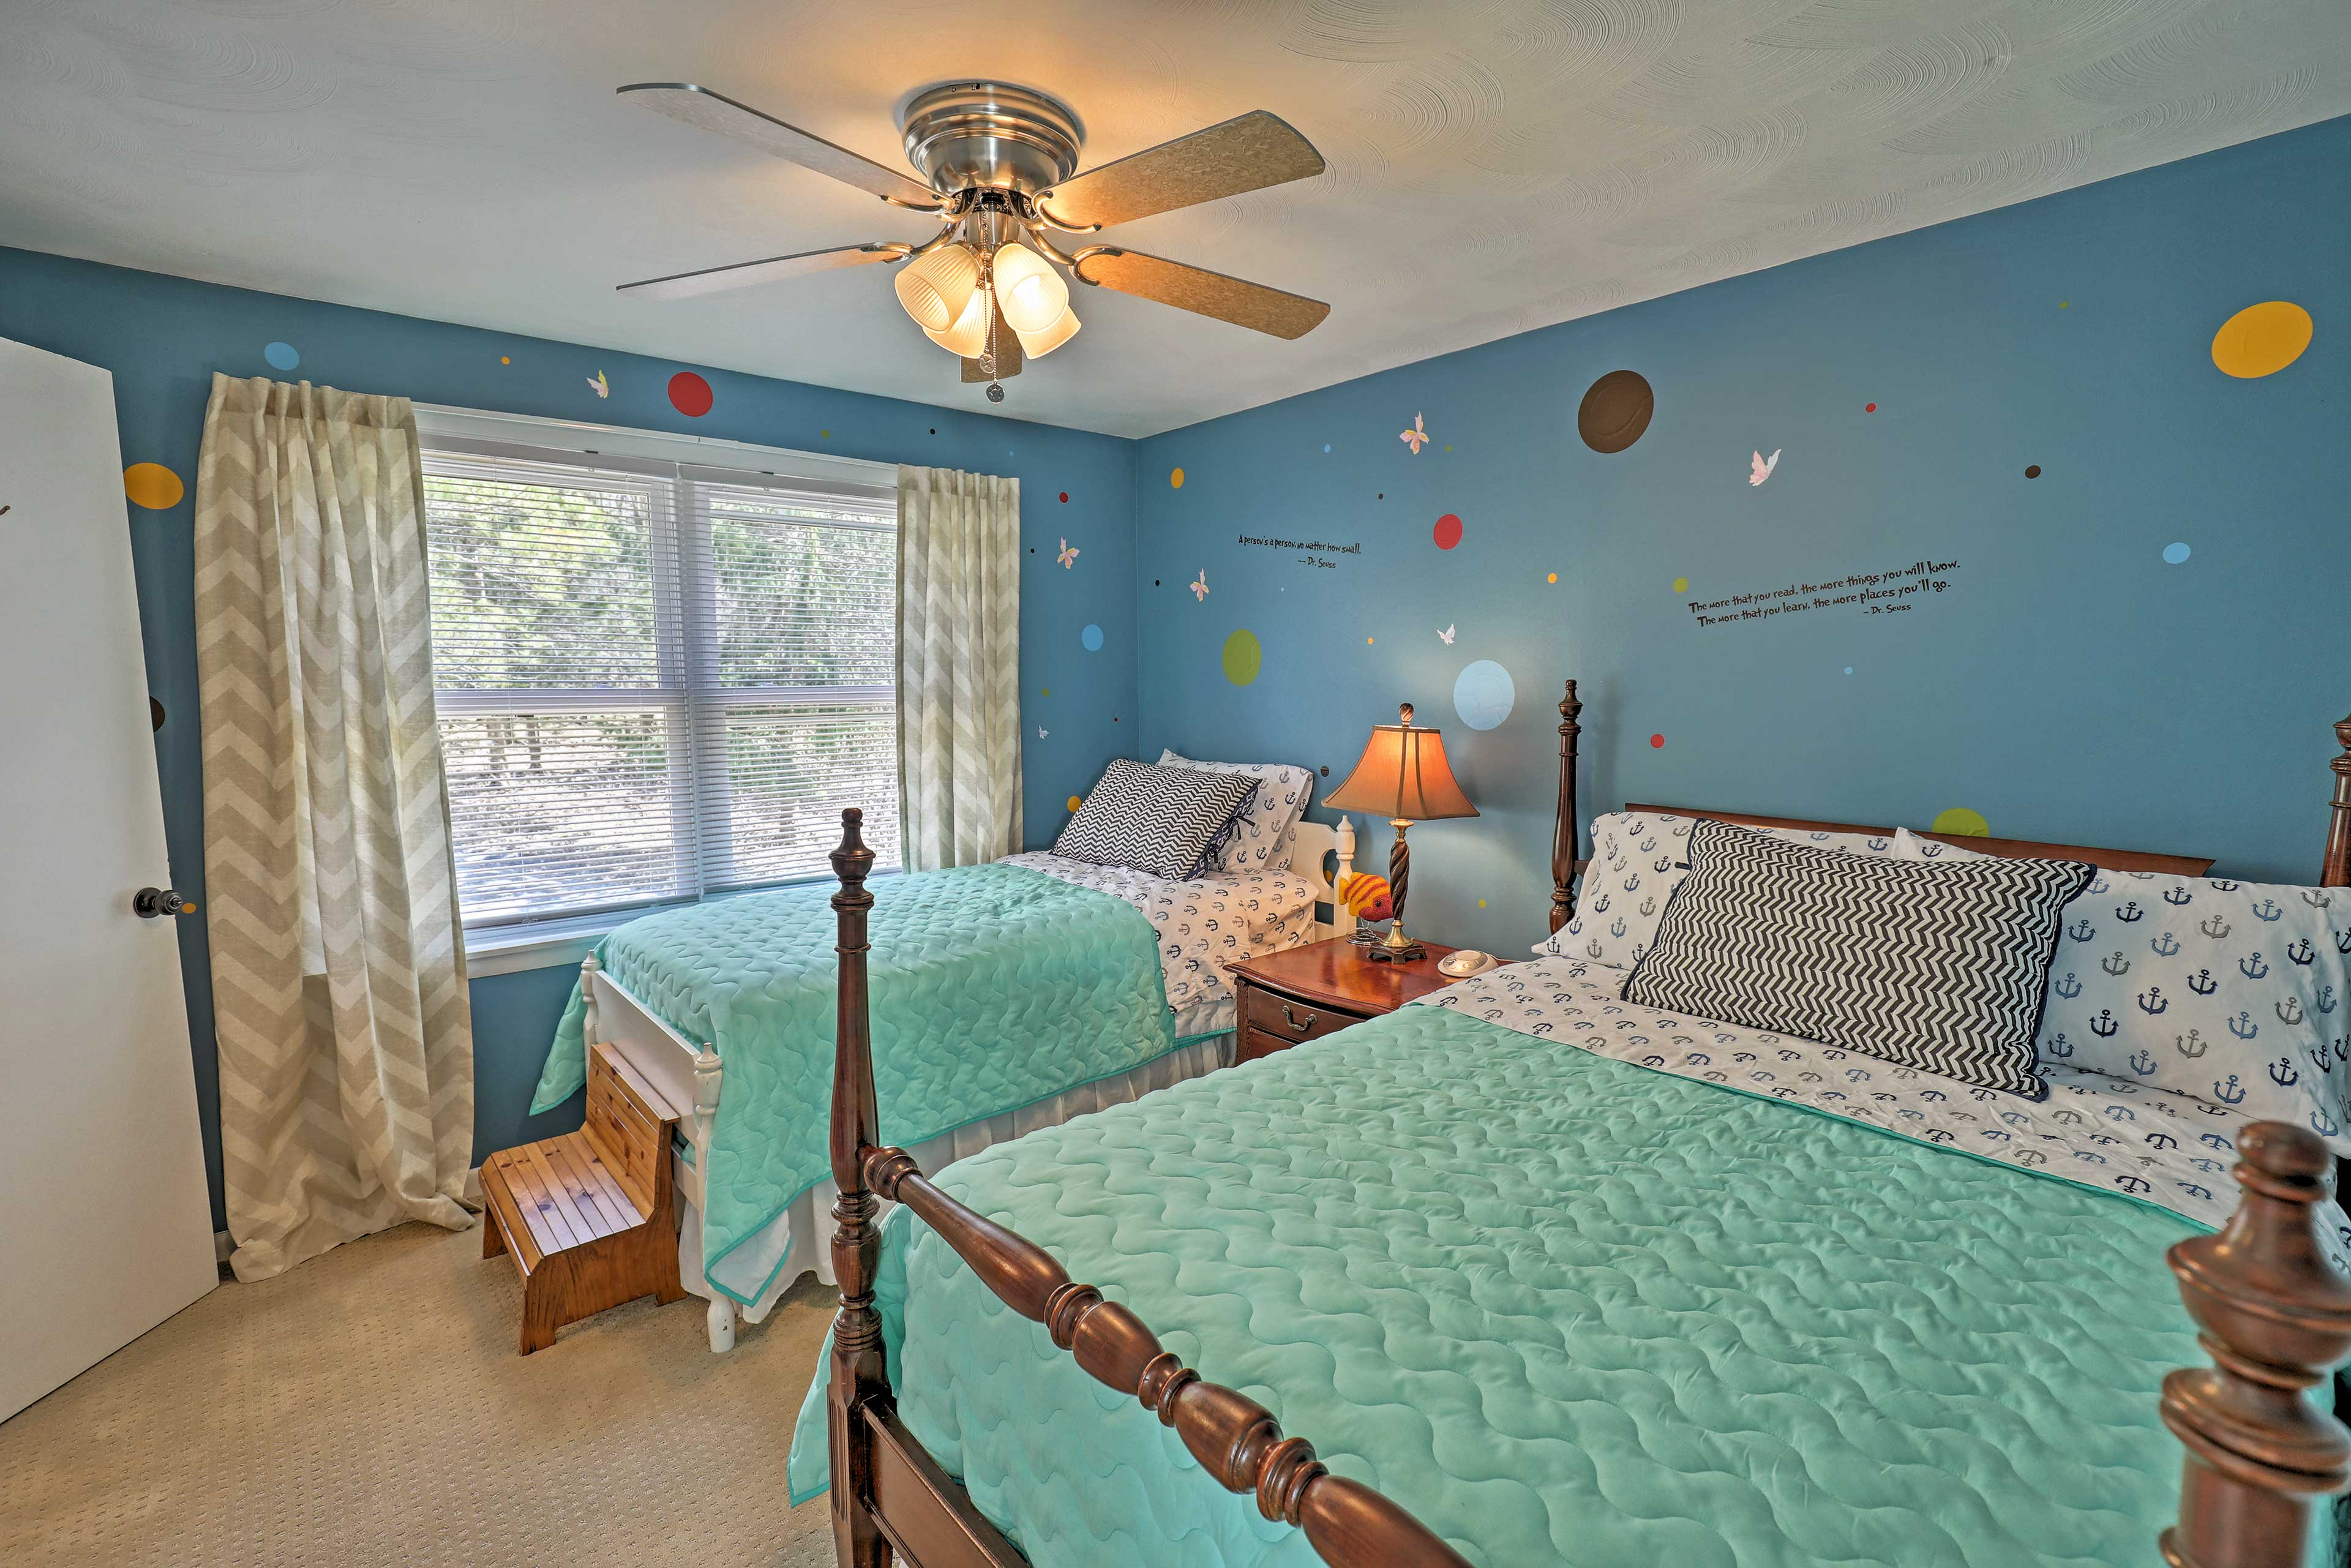 Three guests can sleep in the full bed and twin bed.